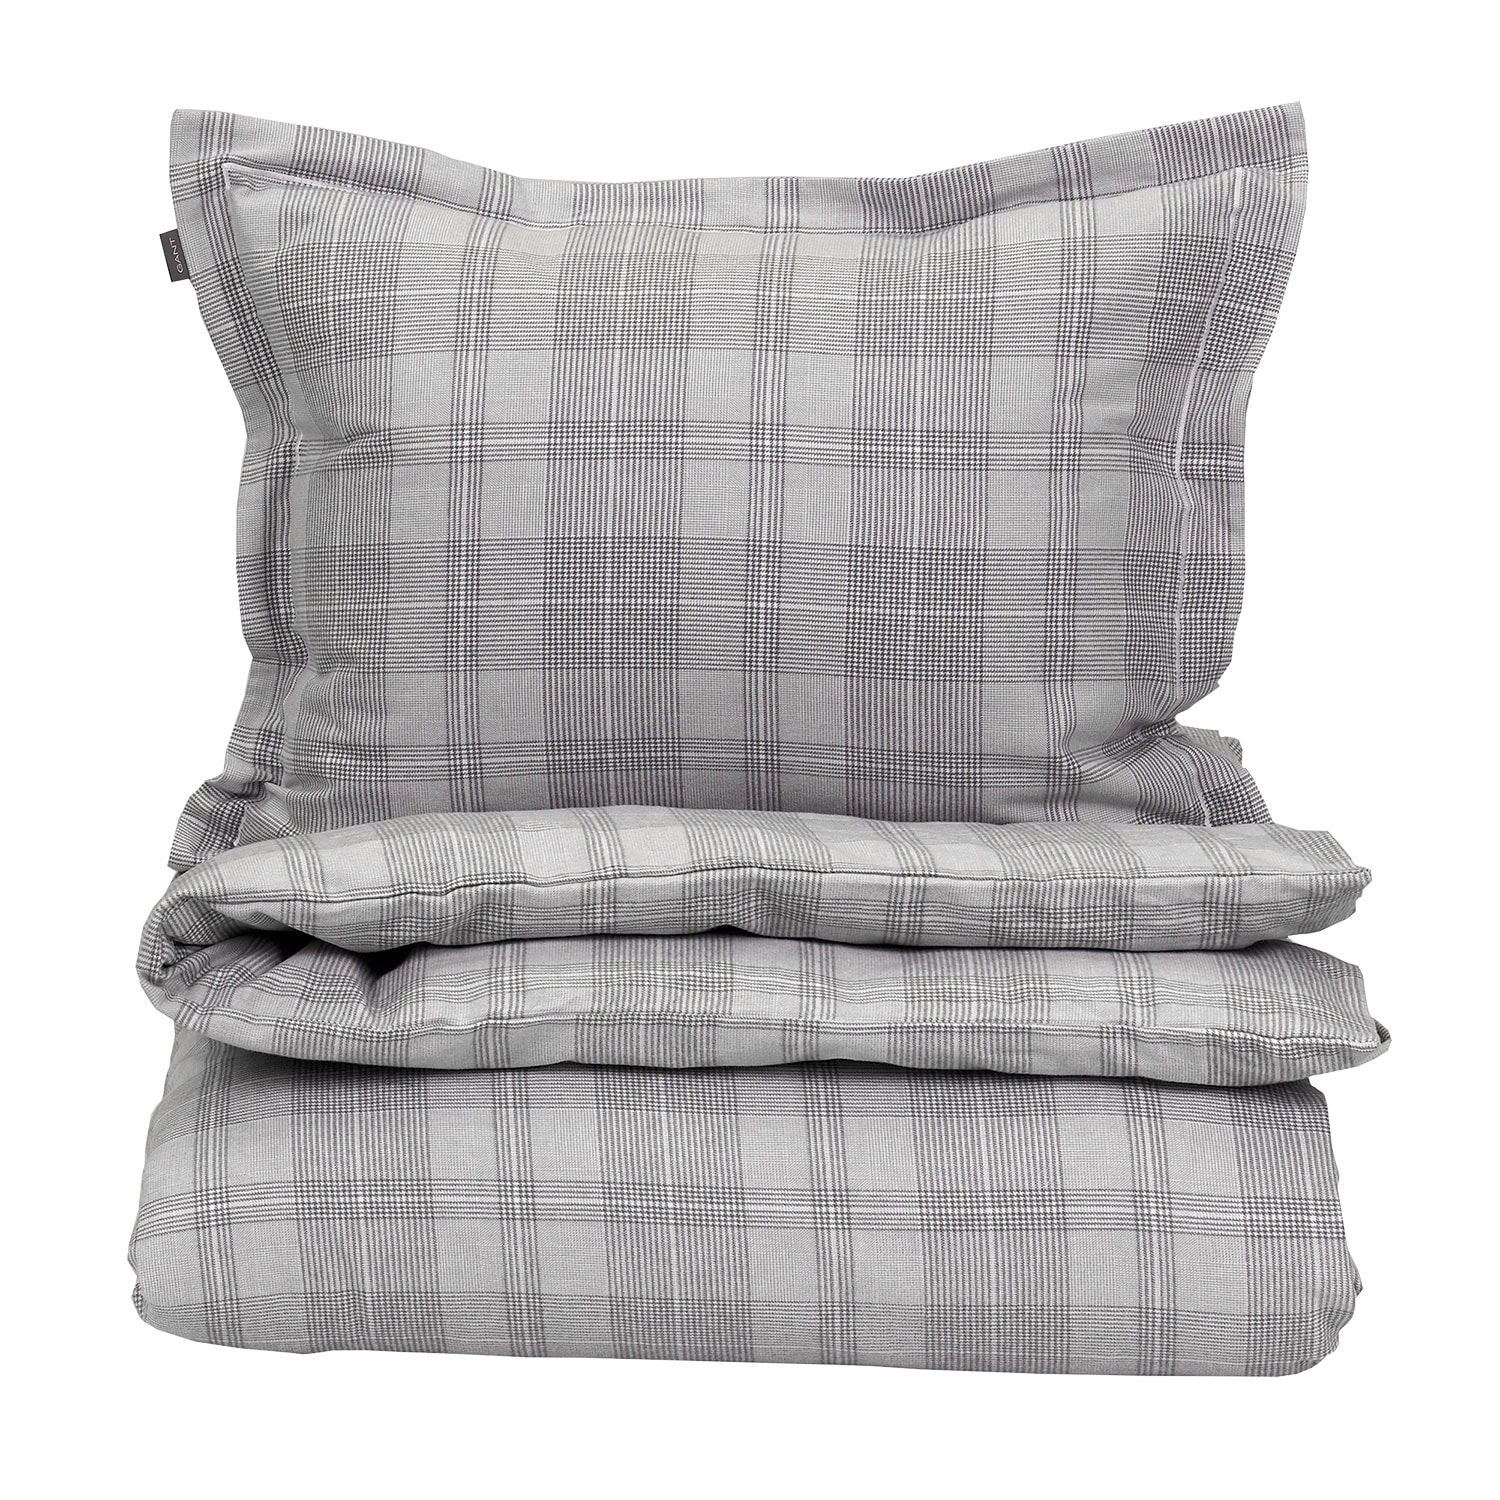 1255b5ca Flanell Check Dynetrekk 150x210cm, Grå - Gant Home @ RoyalDesign.no